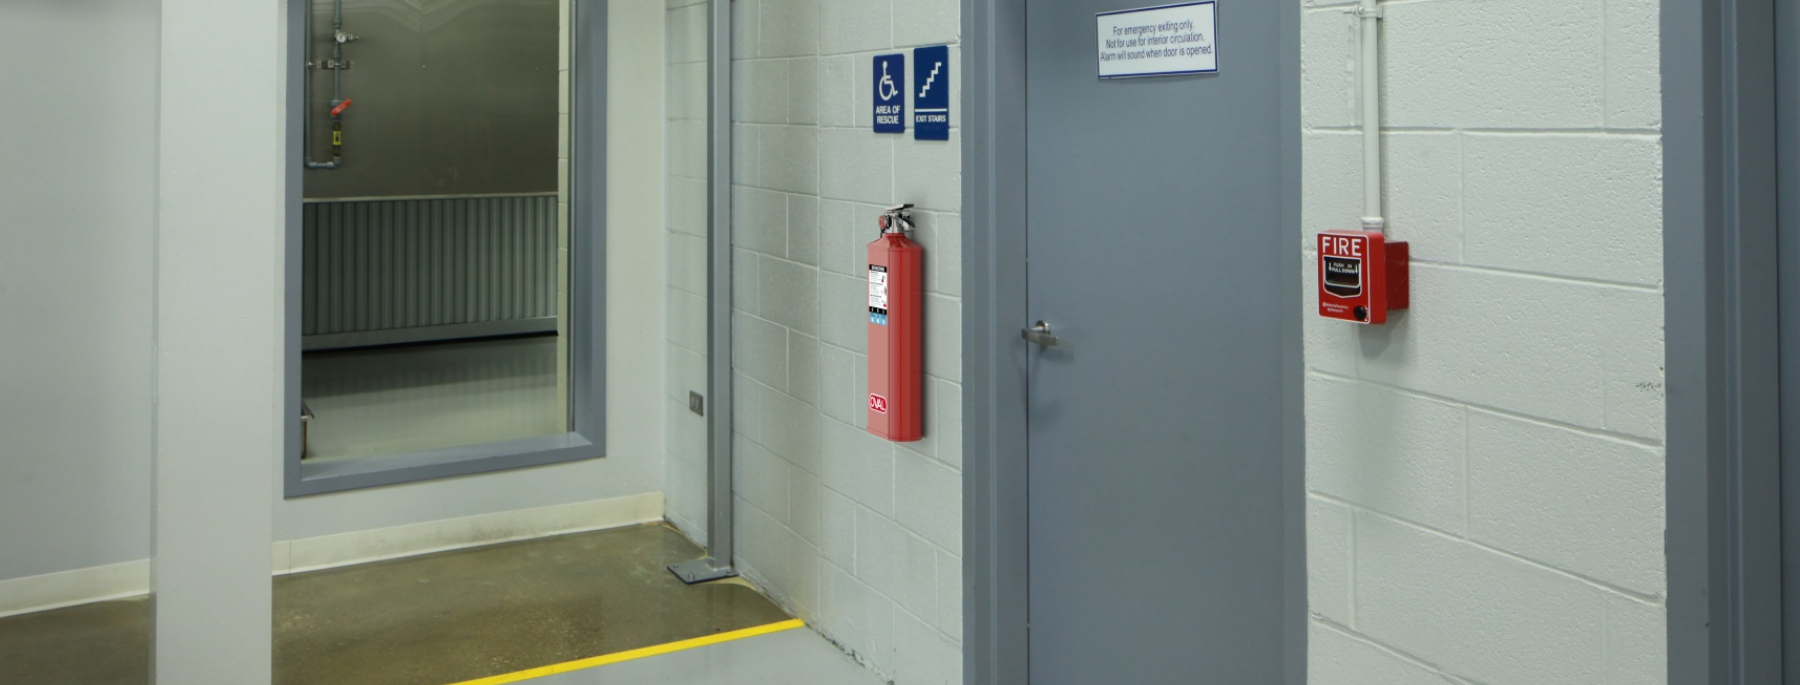 Oval fire extinguisher stairwell